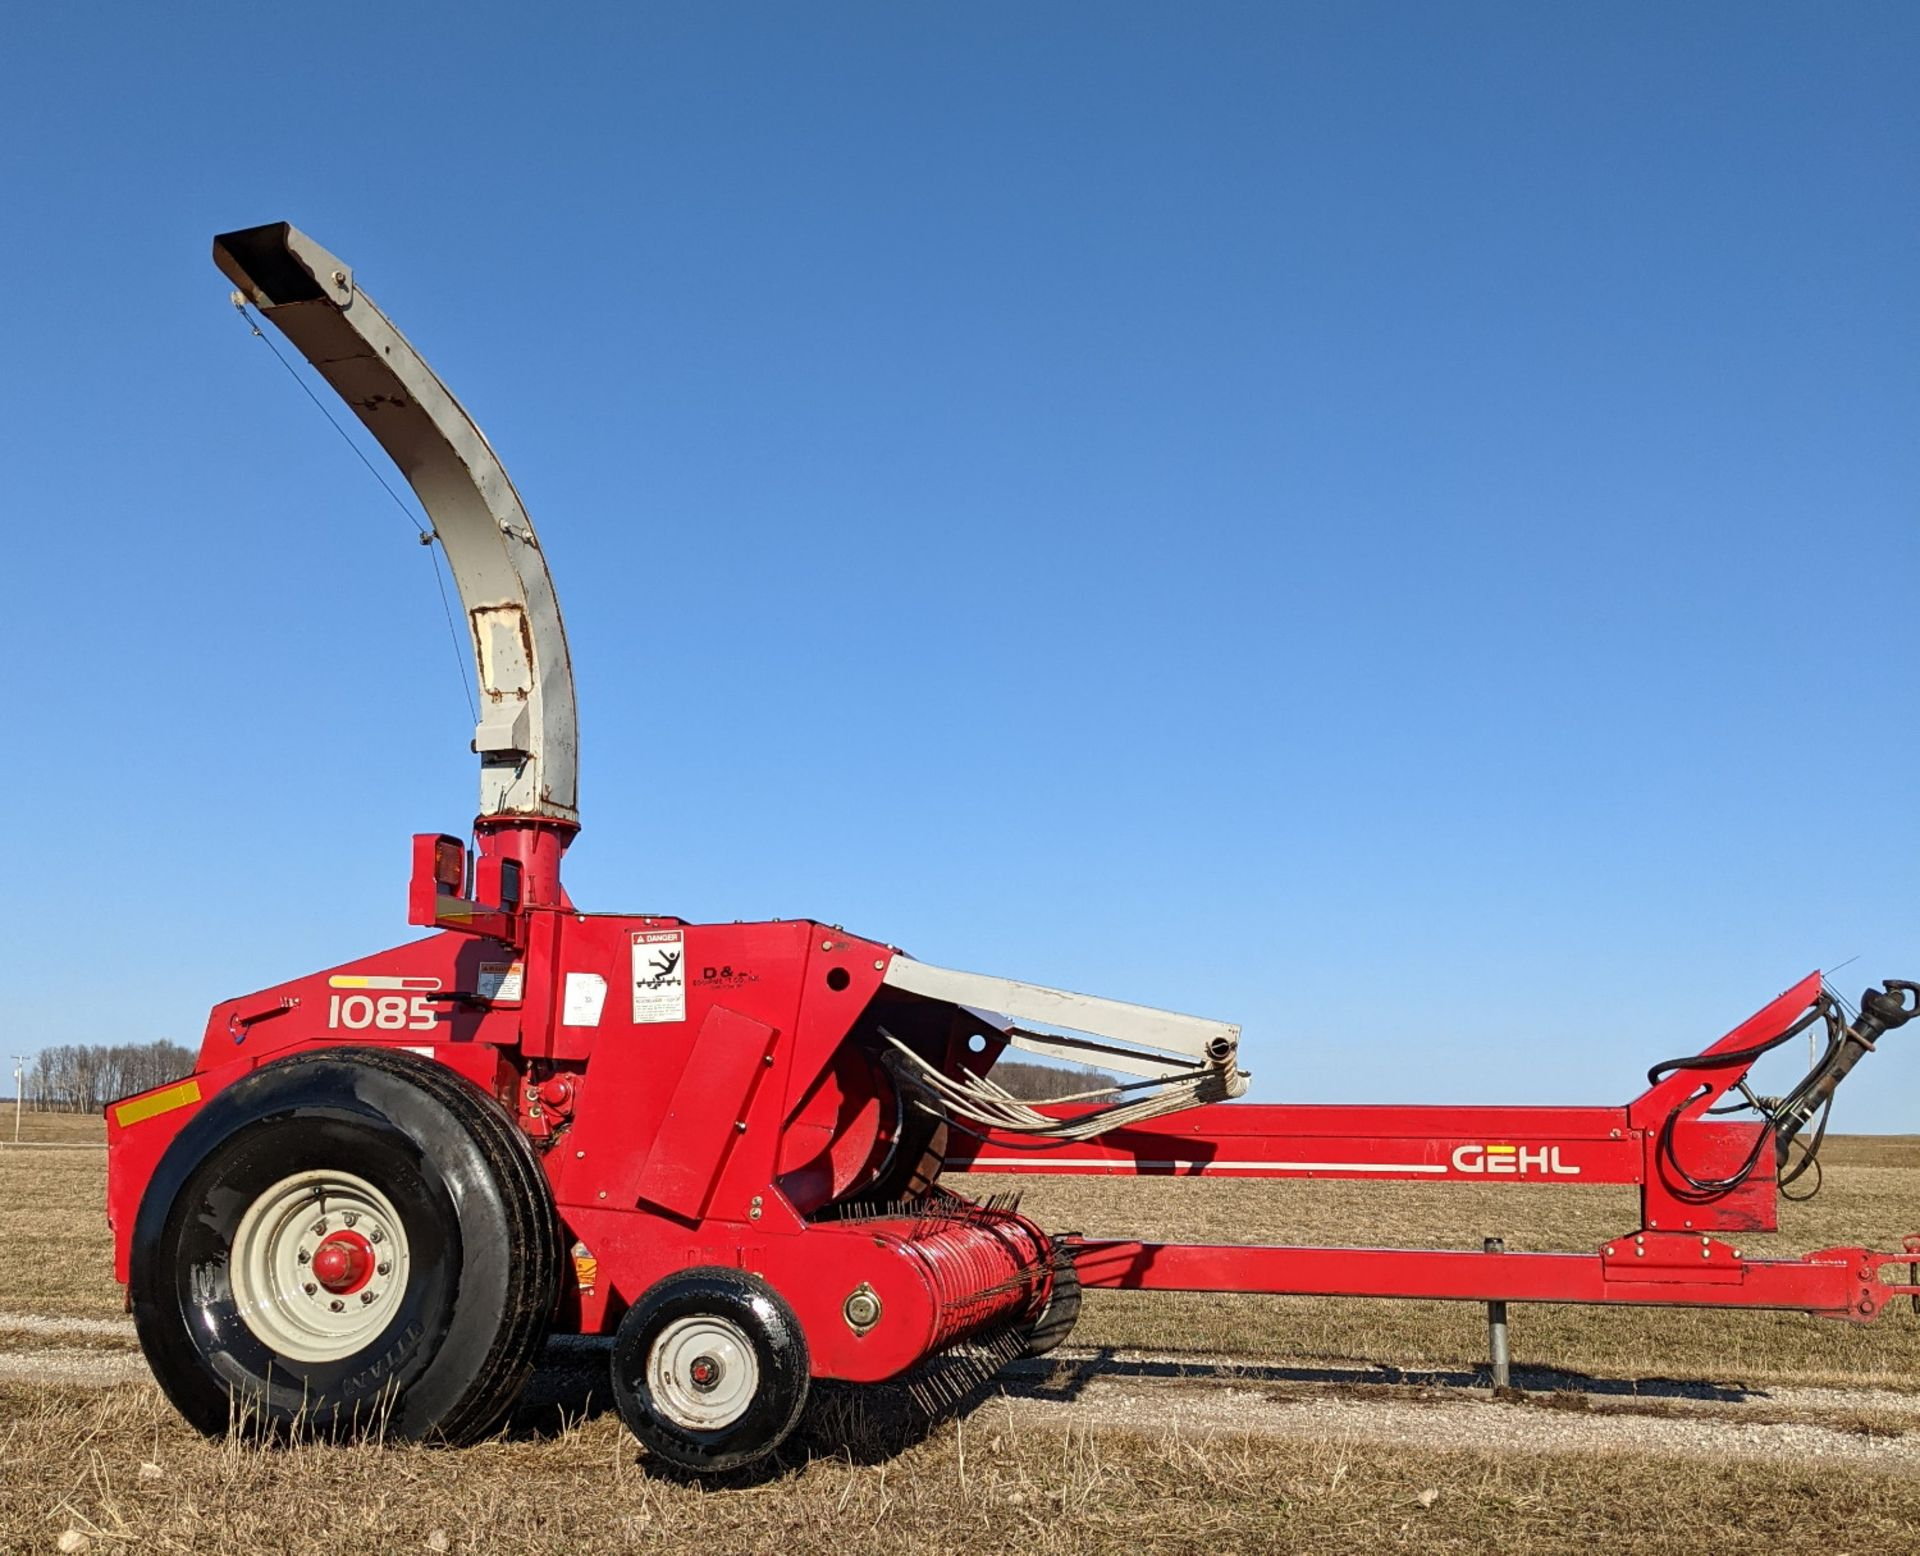 GEHL 1085 FORAGE CHOPPER W/WIDE HAYHEAD - Image 2 of 8